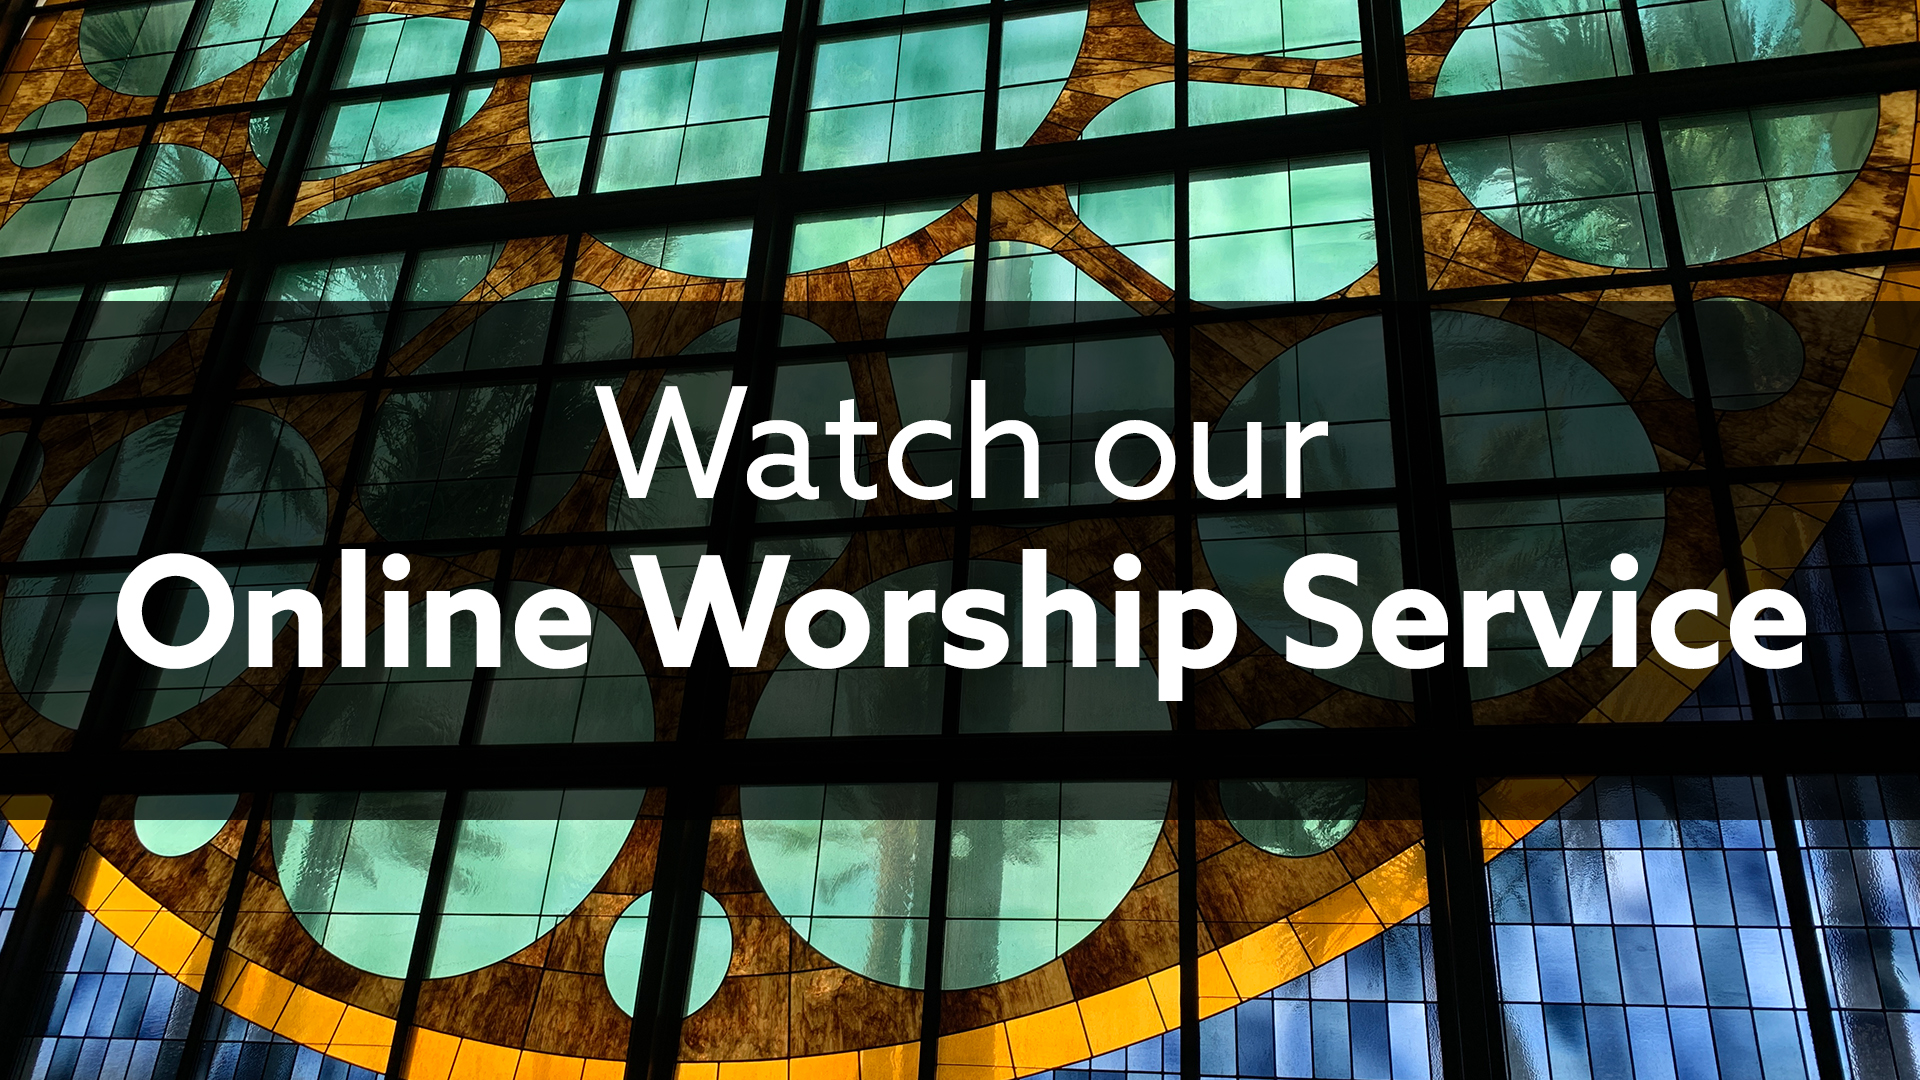 Watch Our Online Worship Service